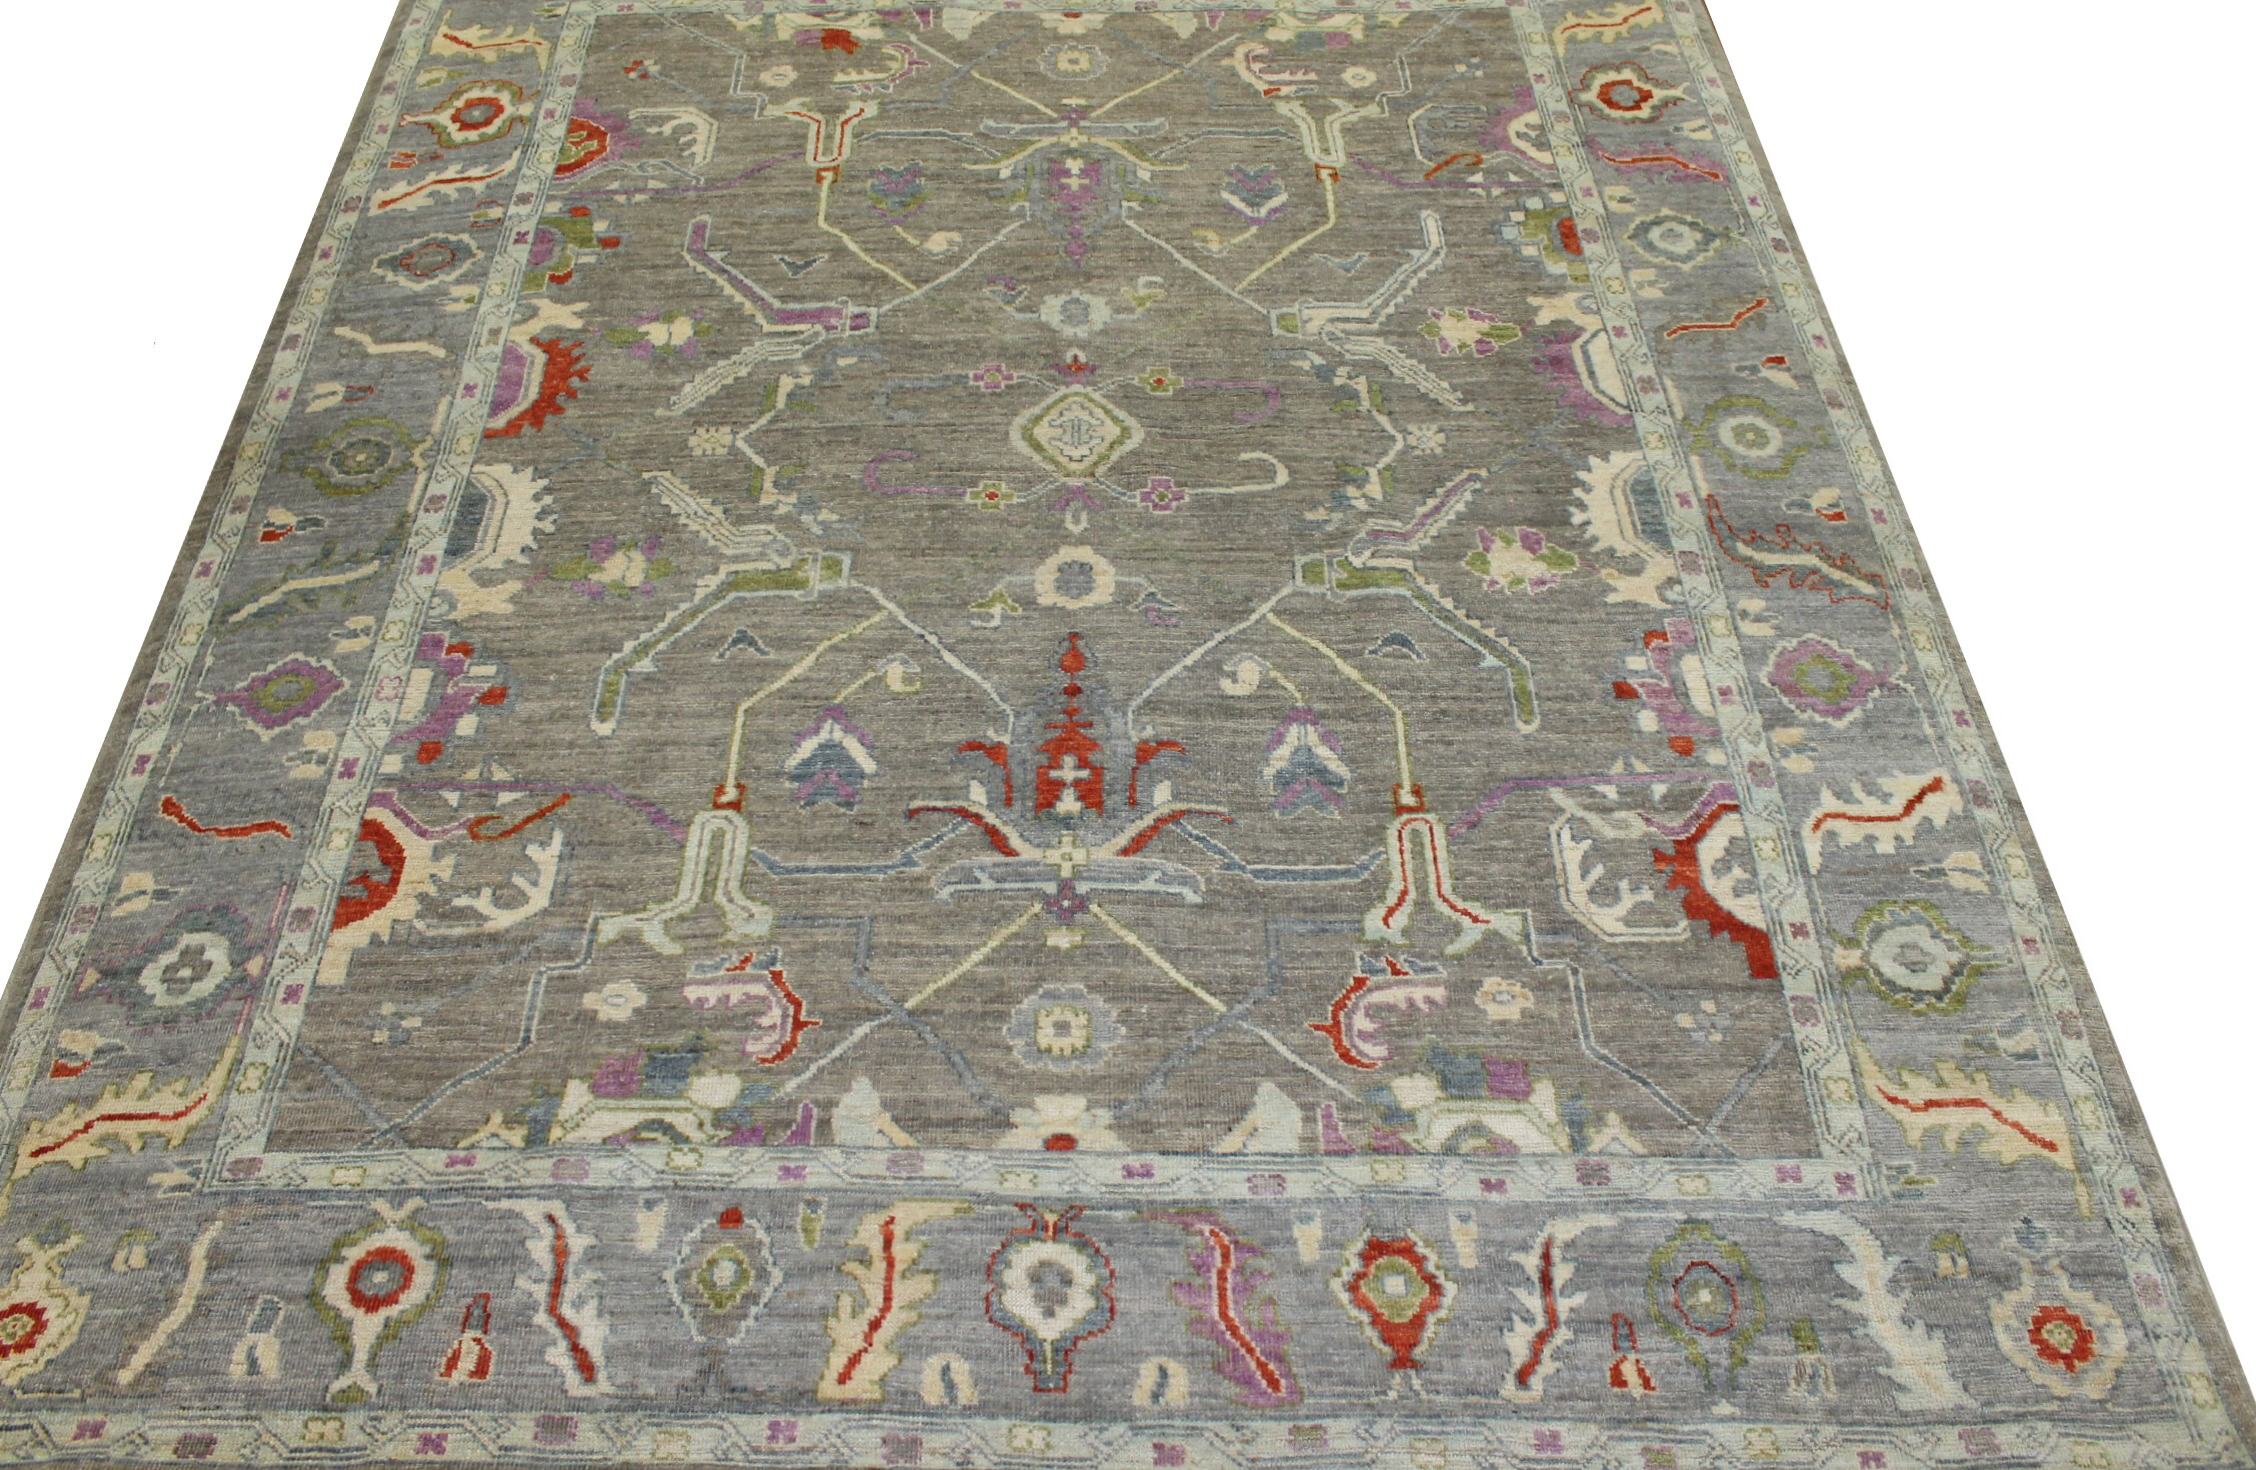 8x10 Oushak Hand Knotted Wool Area Rug - MR023360